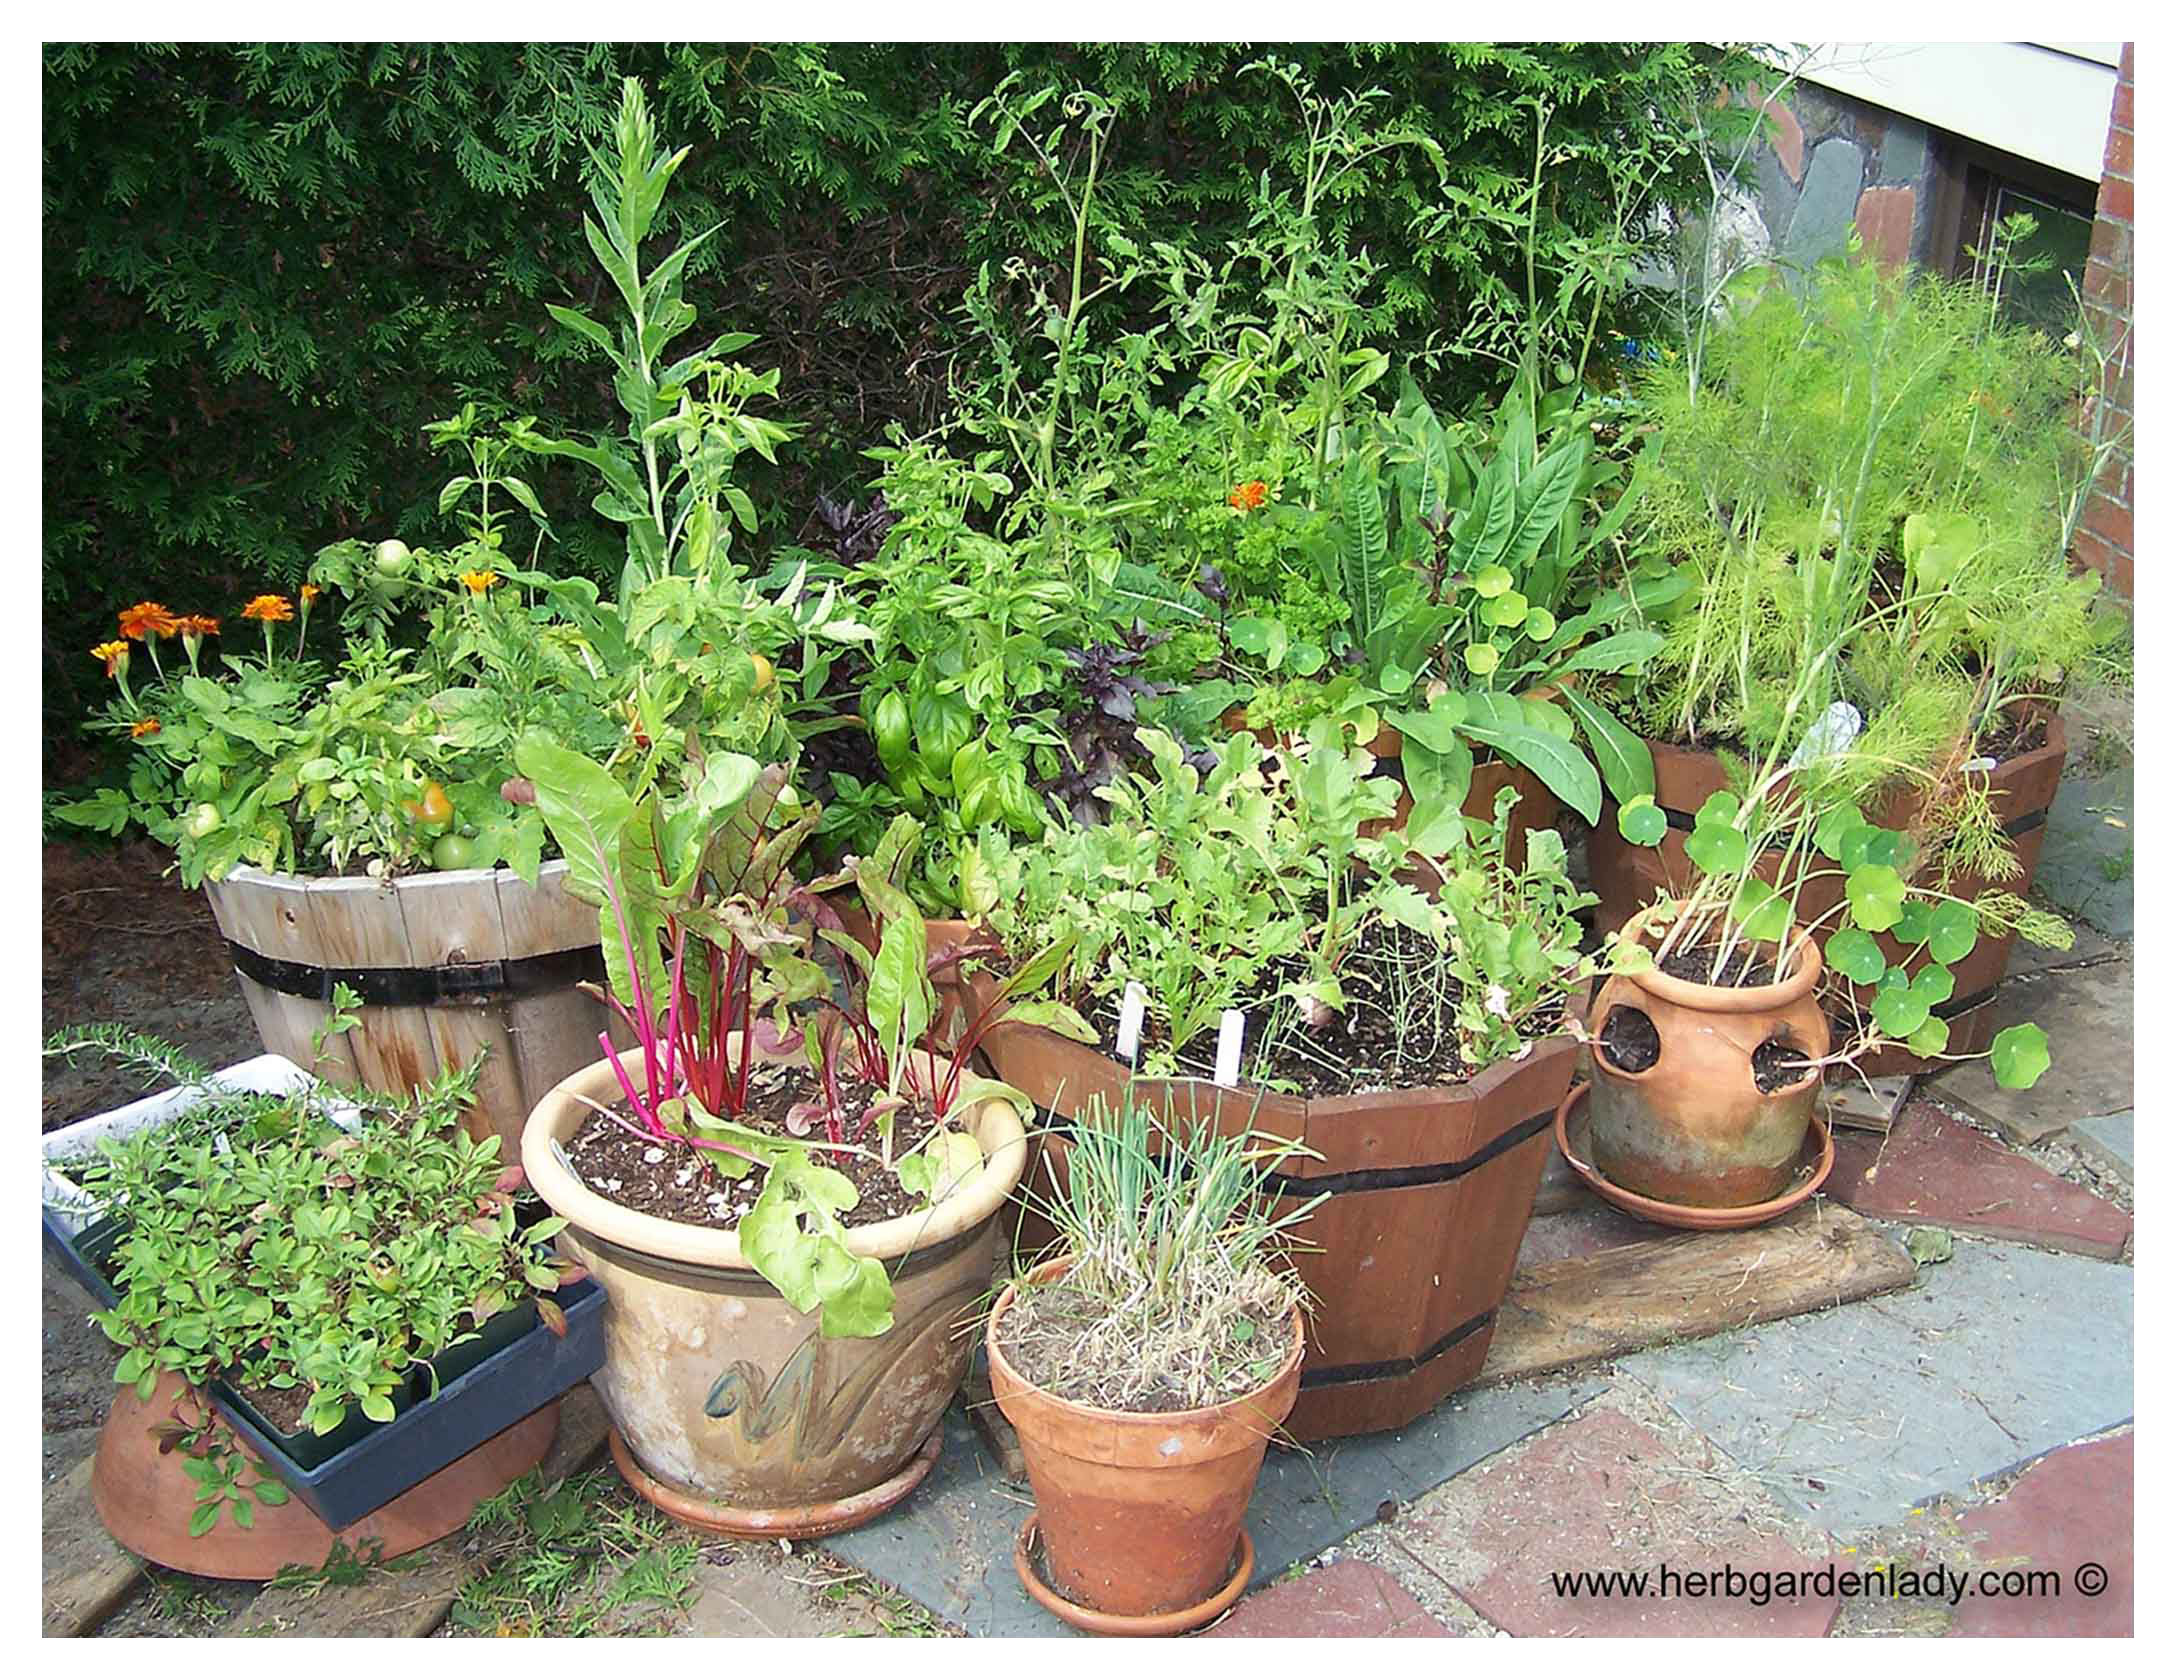 Grow A Culinary Herb Garden For Cooking, Drying Or Herb Tea Herb And Flower Garden Designs Html on herb garden layout design, herb garden design plans, herb garden planning, herb landscaping, herb garden clip art, herb garden design software, herb container gardens, herb garden ideas, herb knot garden design,